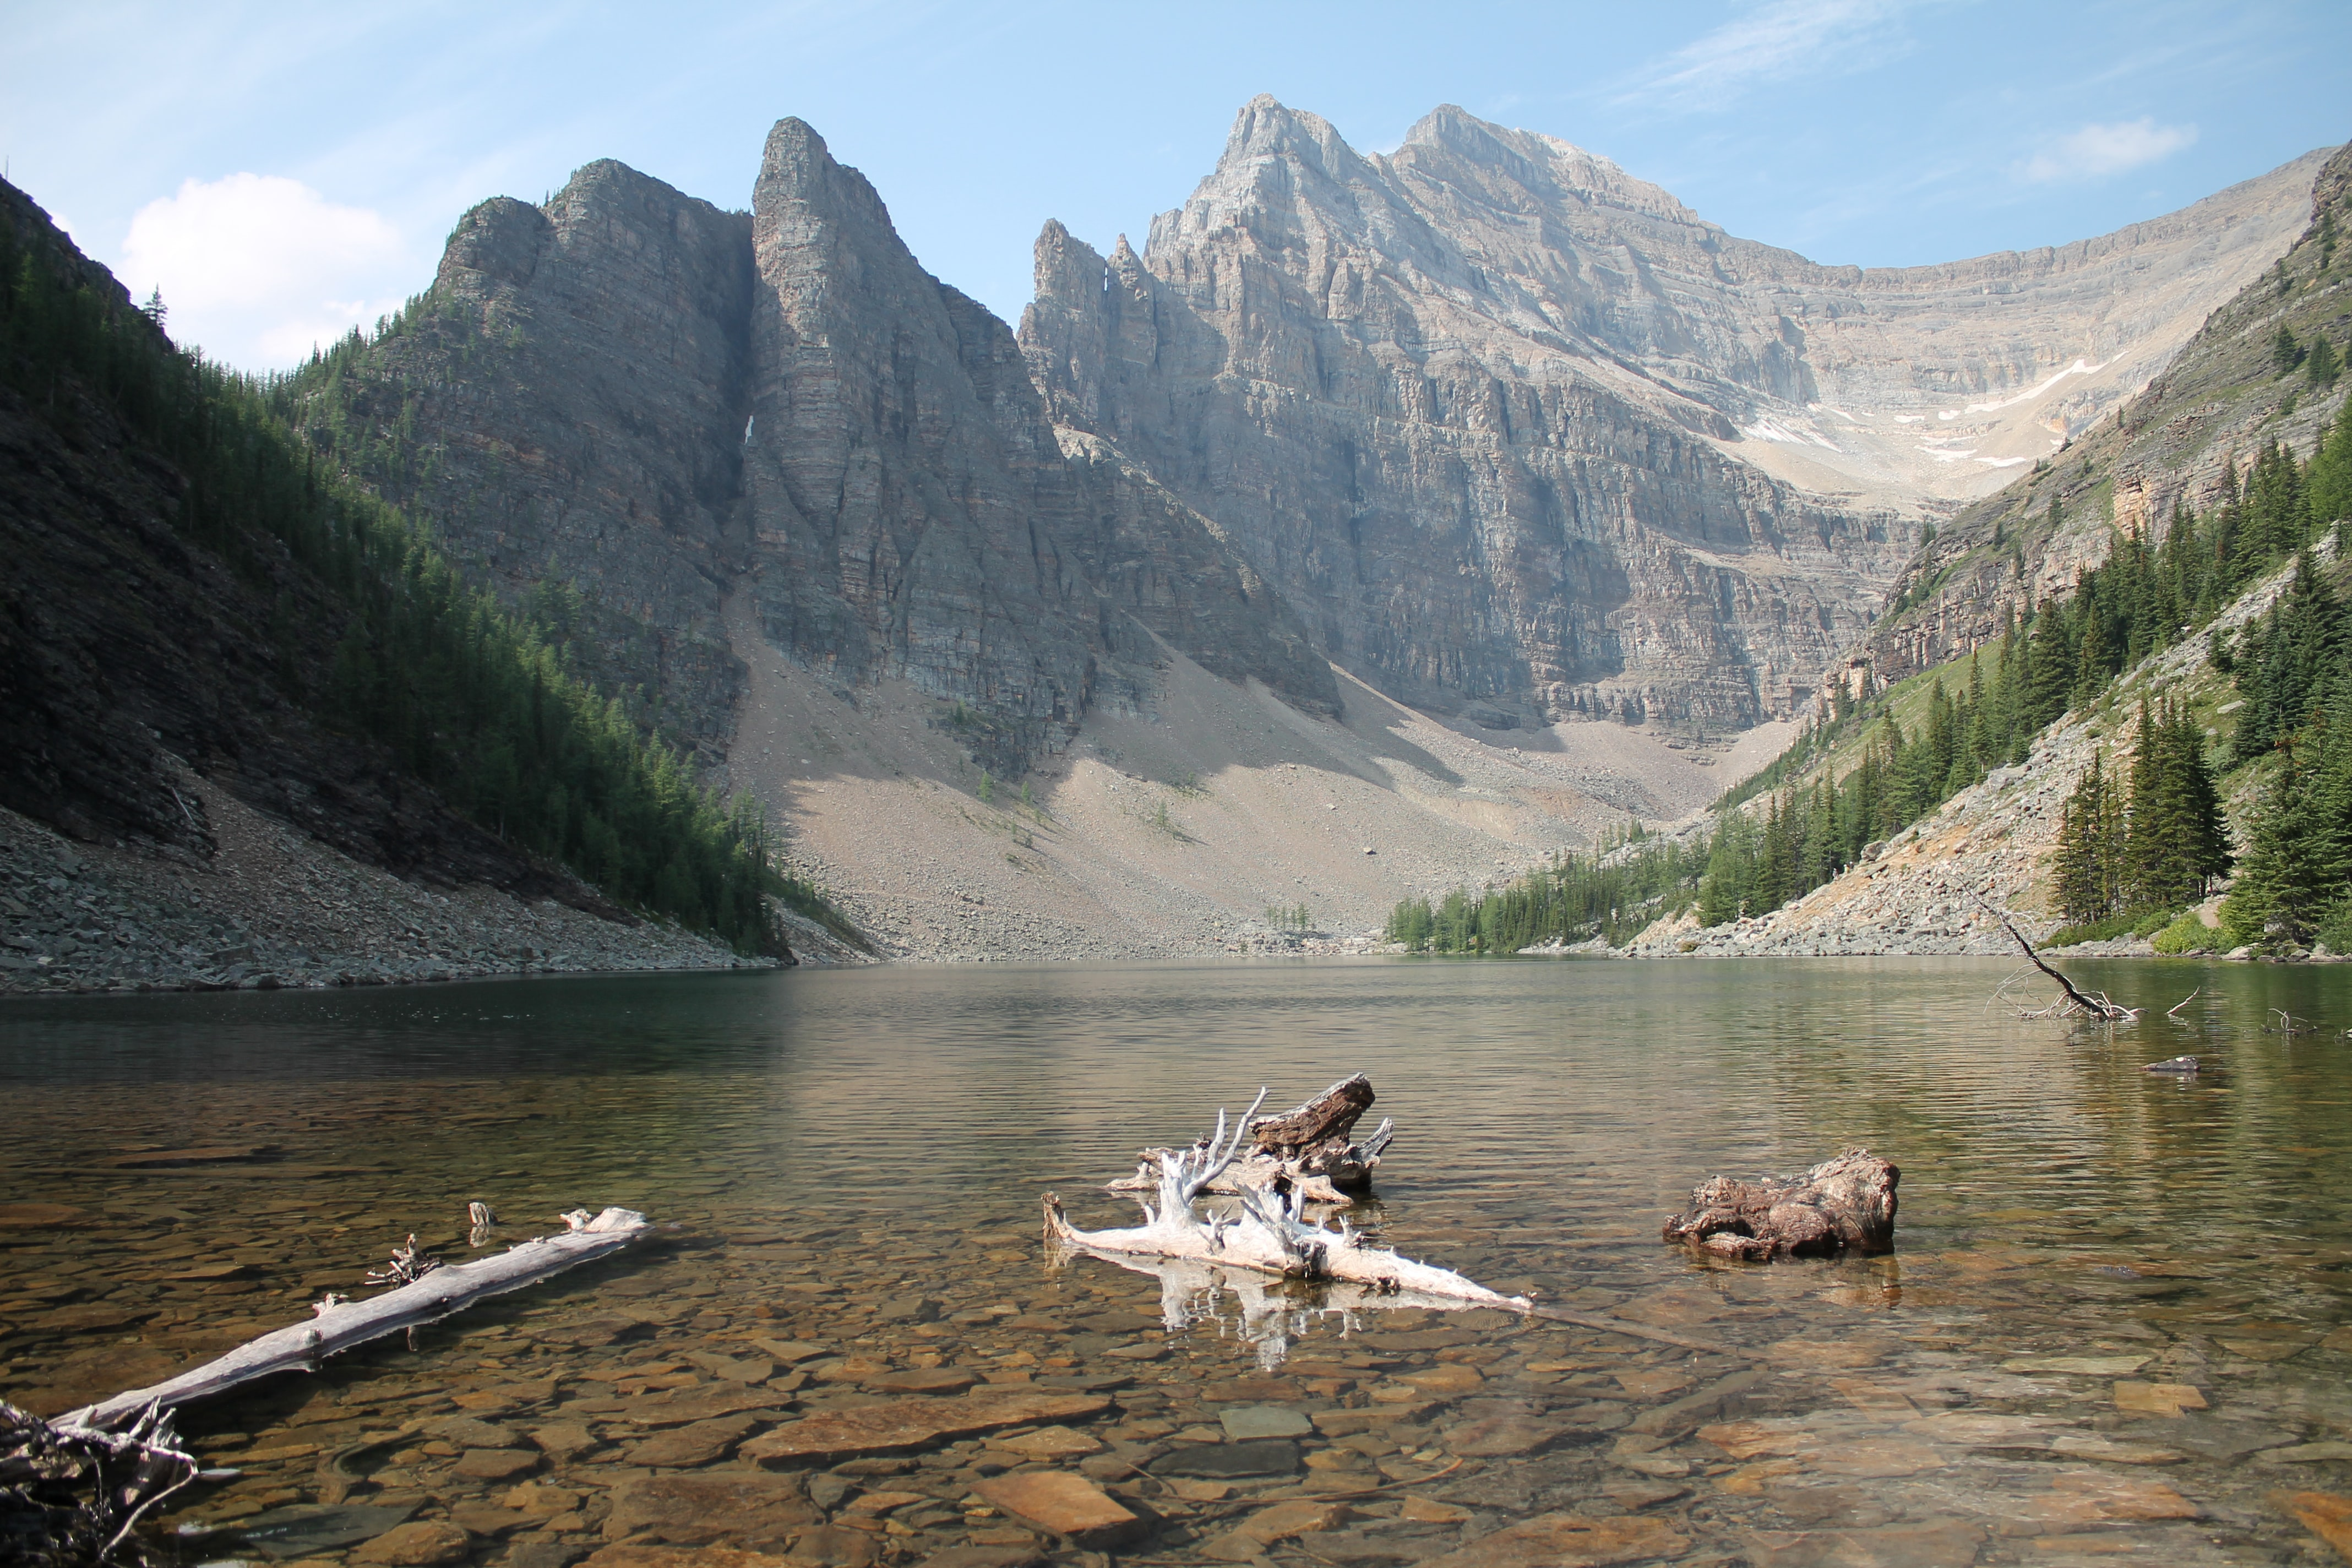 Driftwood in a shallow mountain lake